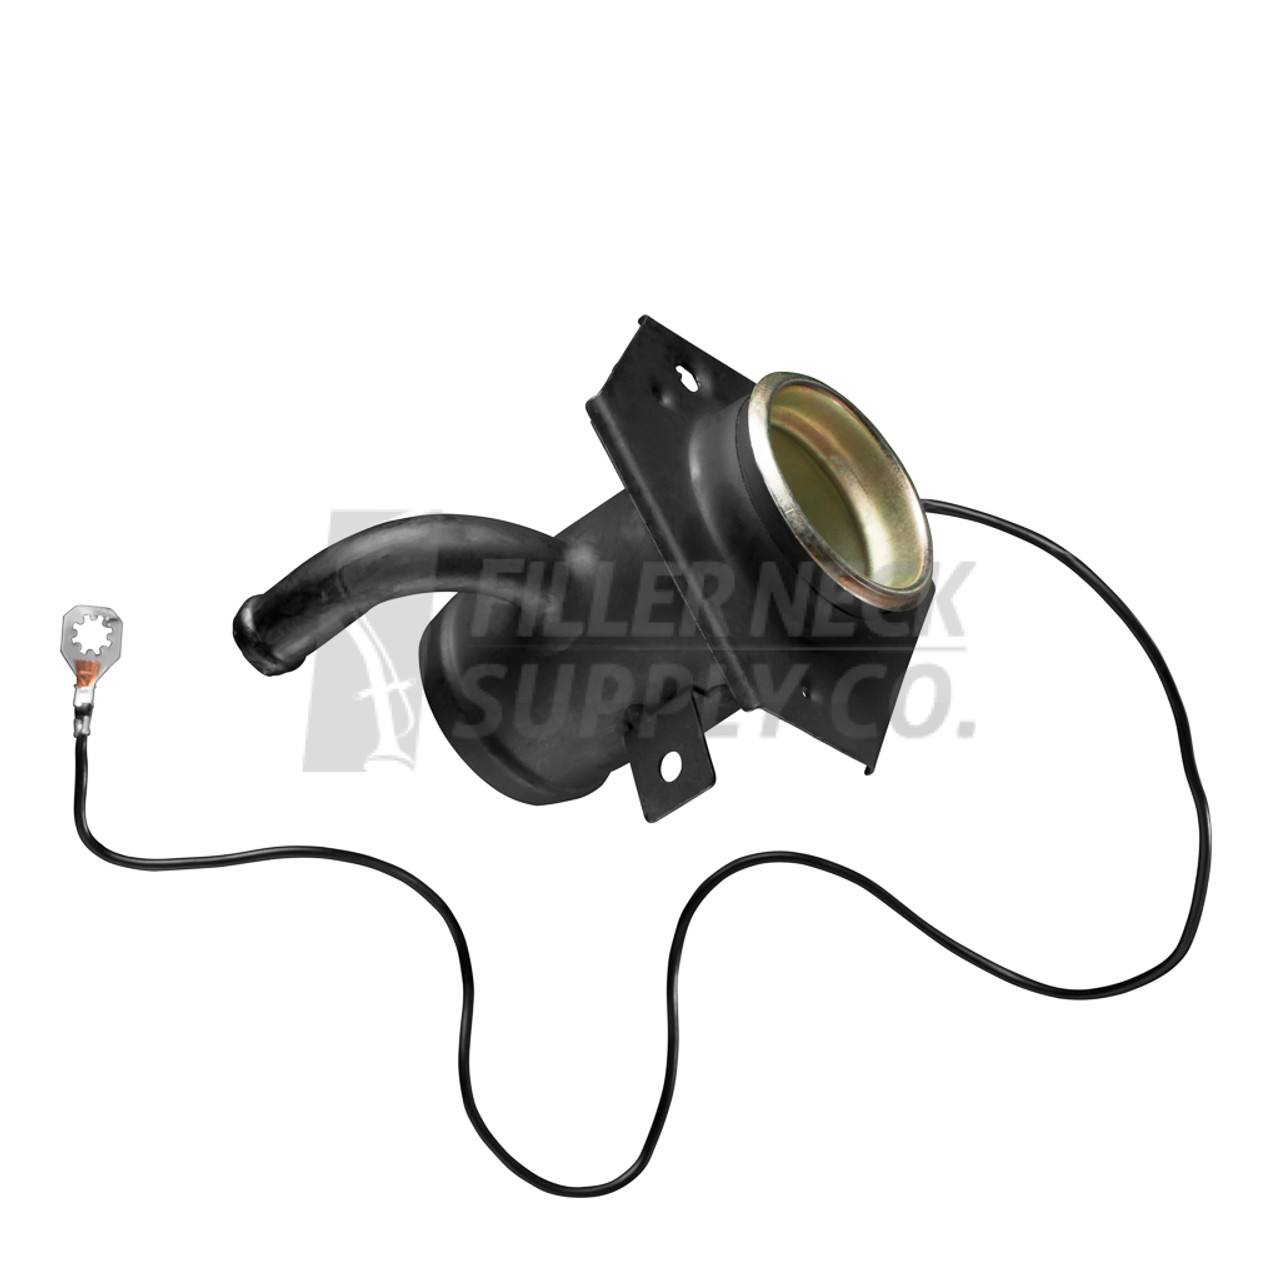 Cab Chassis Service Body Flatbed Fuel Filler Neck Pipe Hose Fns on 1997 Dodge Flatbed